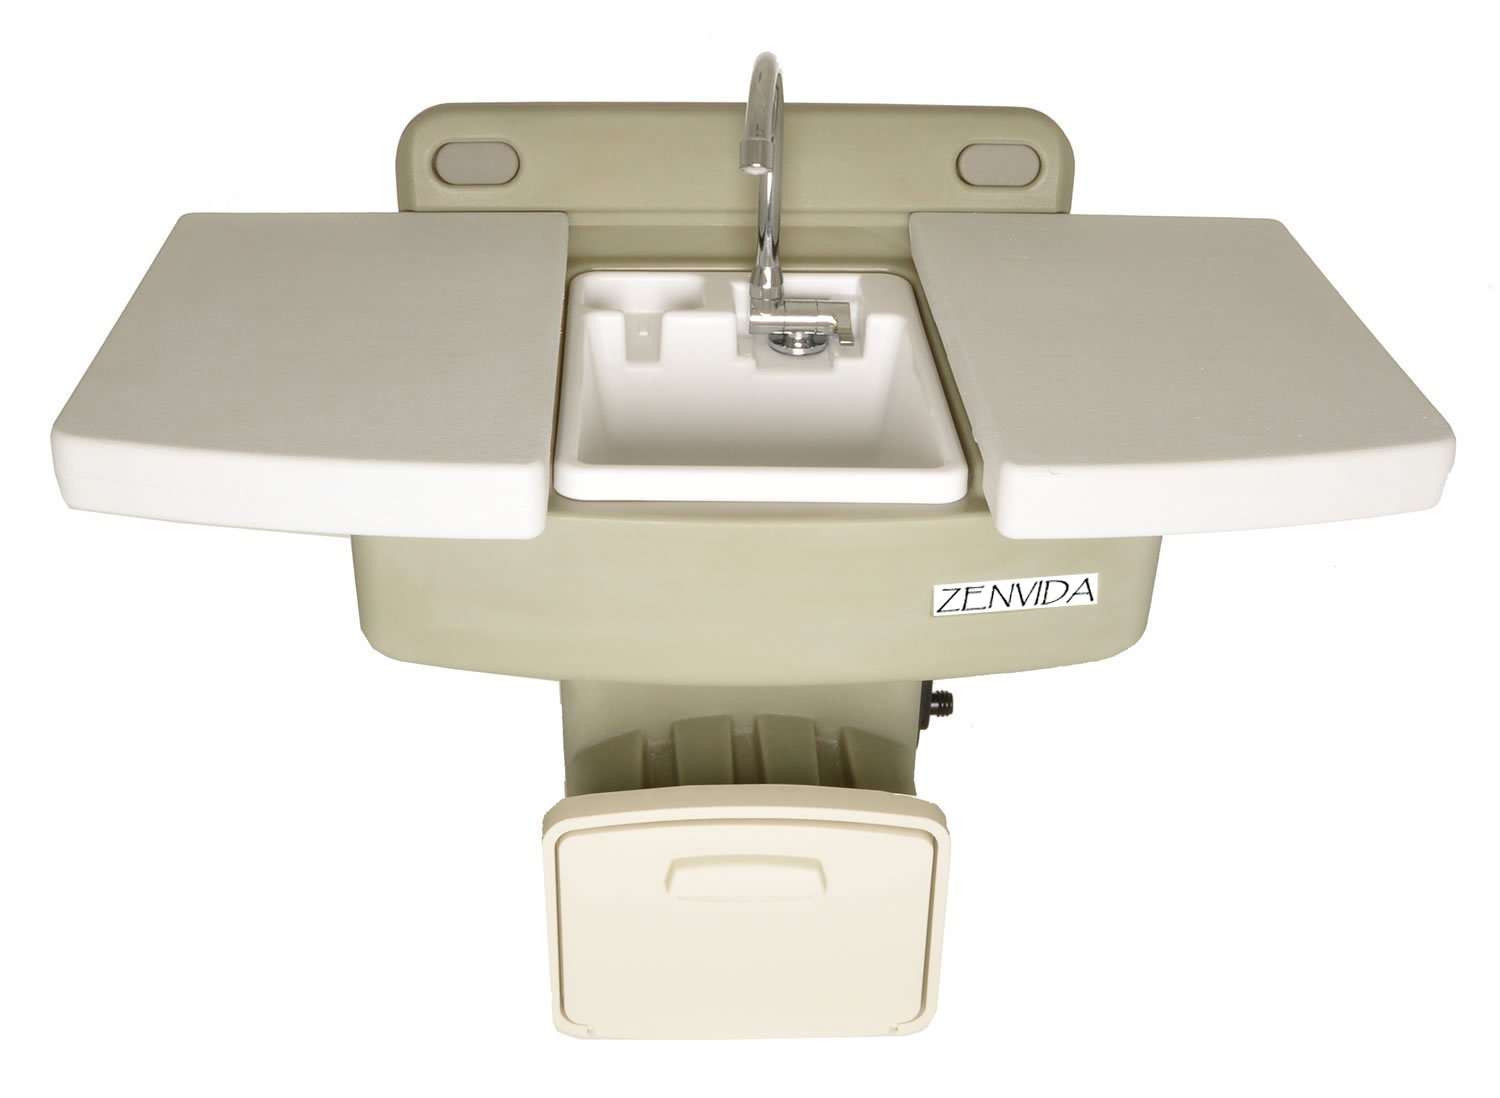 Outdoor Sink: Amazon.com on Patio Sink Station id=18499